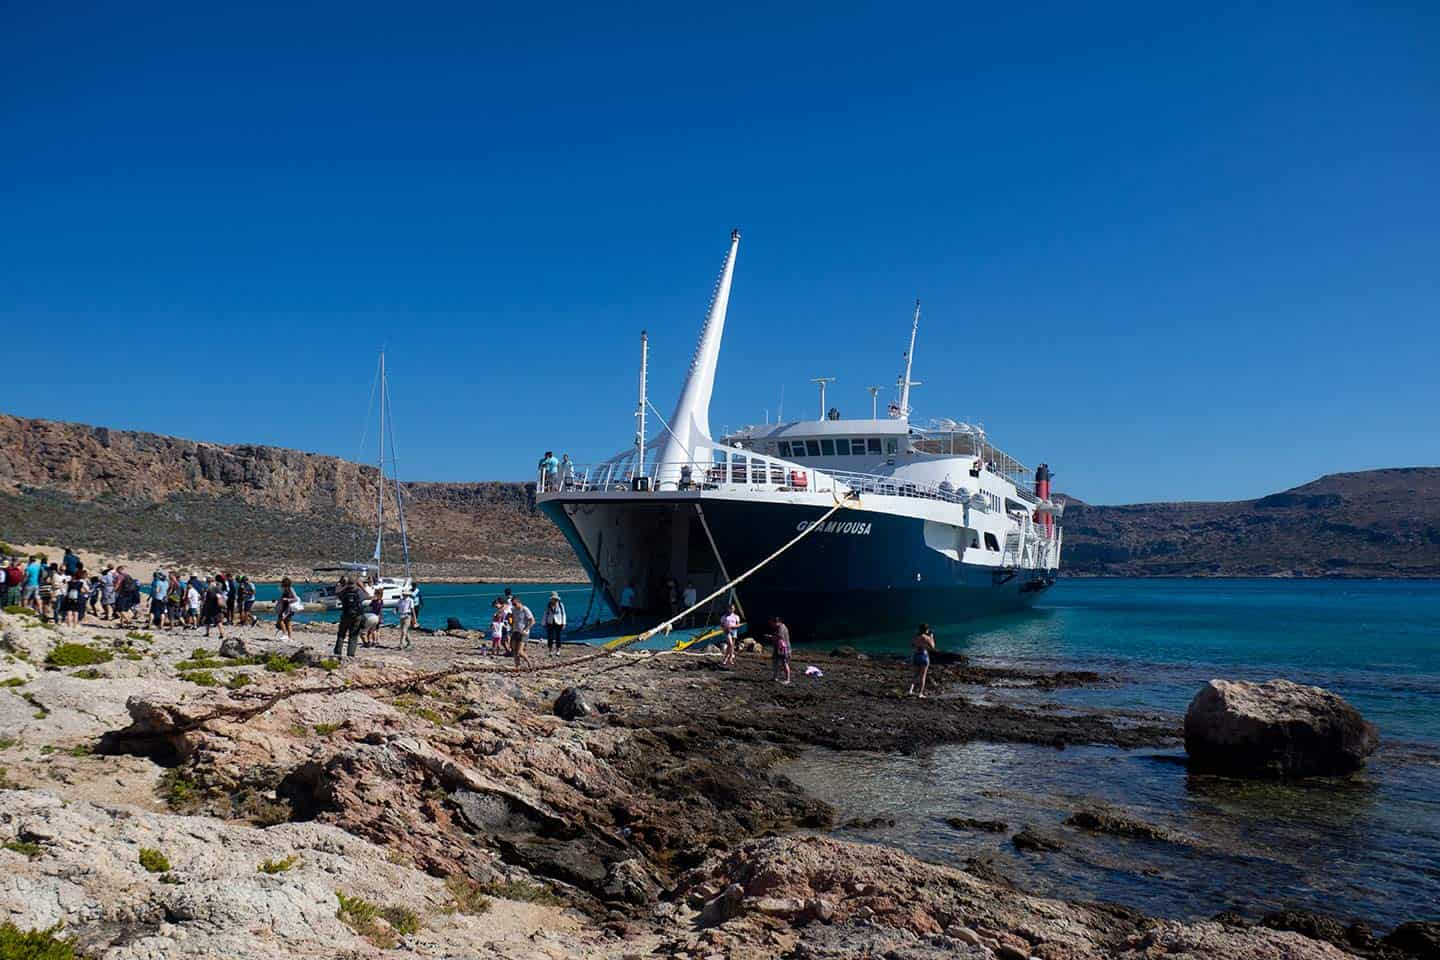 Balos Greece Image of the ferry to Balos moored at Gramvousa Island